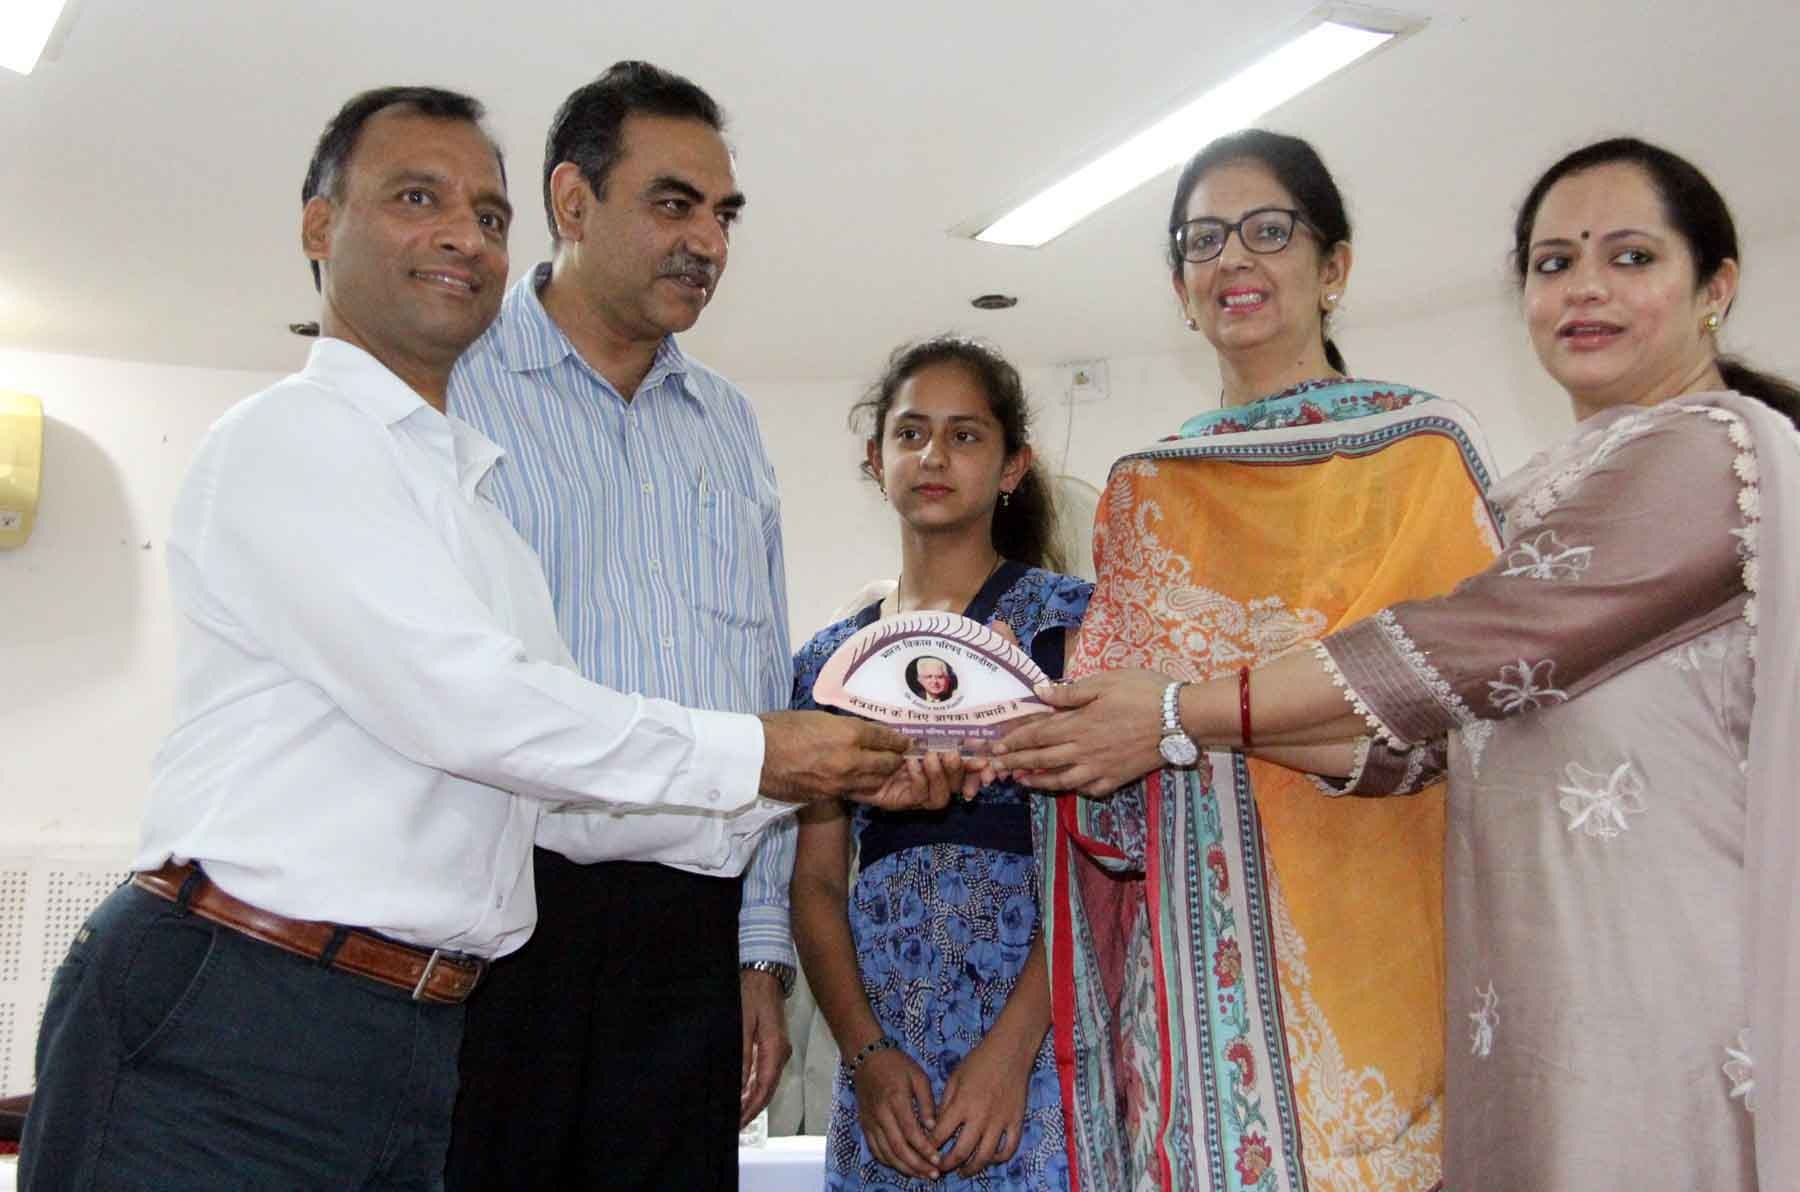 The Adviser to the Administrator, UT, Chandigarh, Mr. Vijay Dev honouring the Eye Donor s Families at Indira Holiday Home, Sector-24, Chandigarh, Chandigarh on Friday, September 04, 2015.